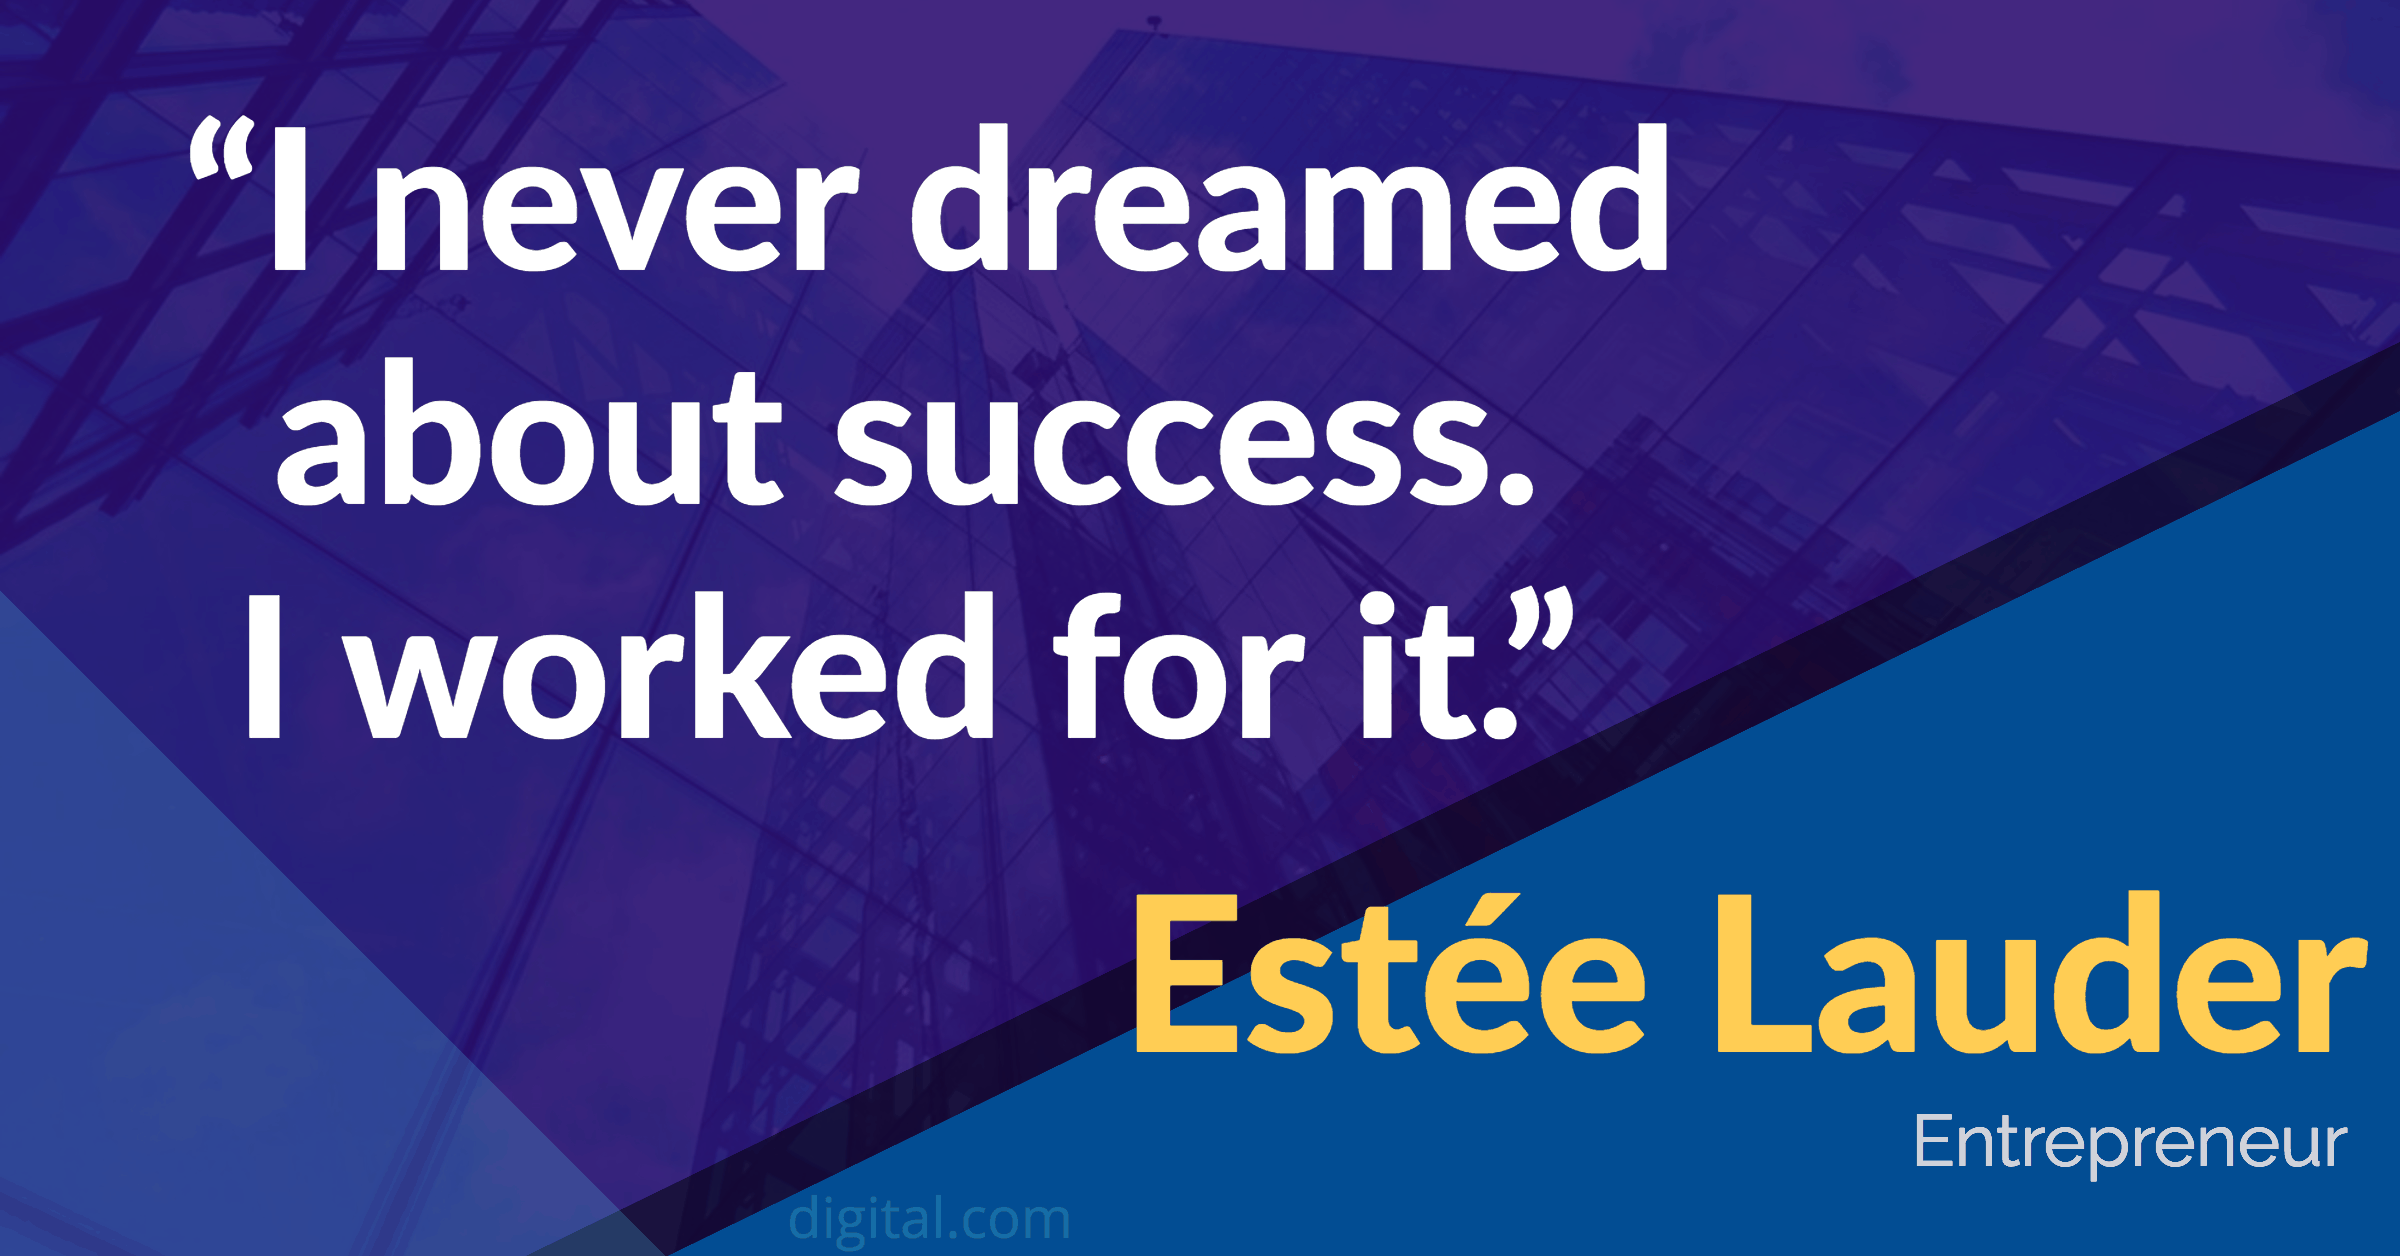 estee lauder leadership quote